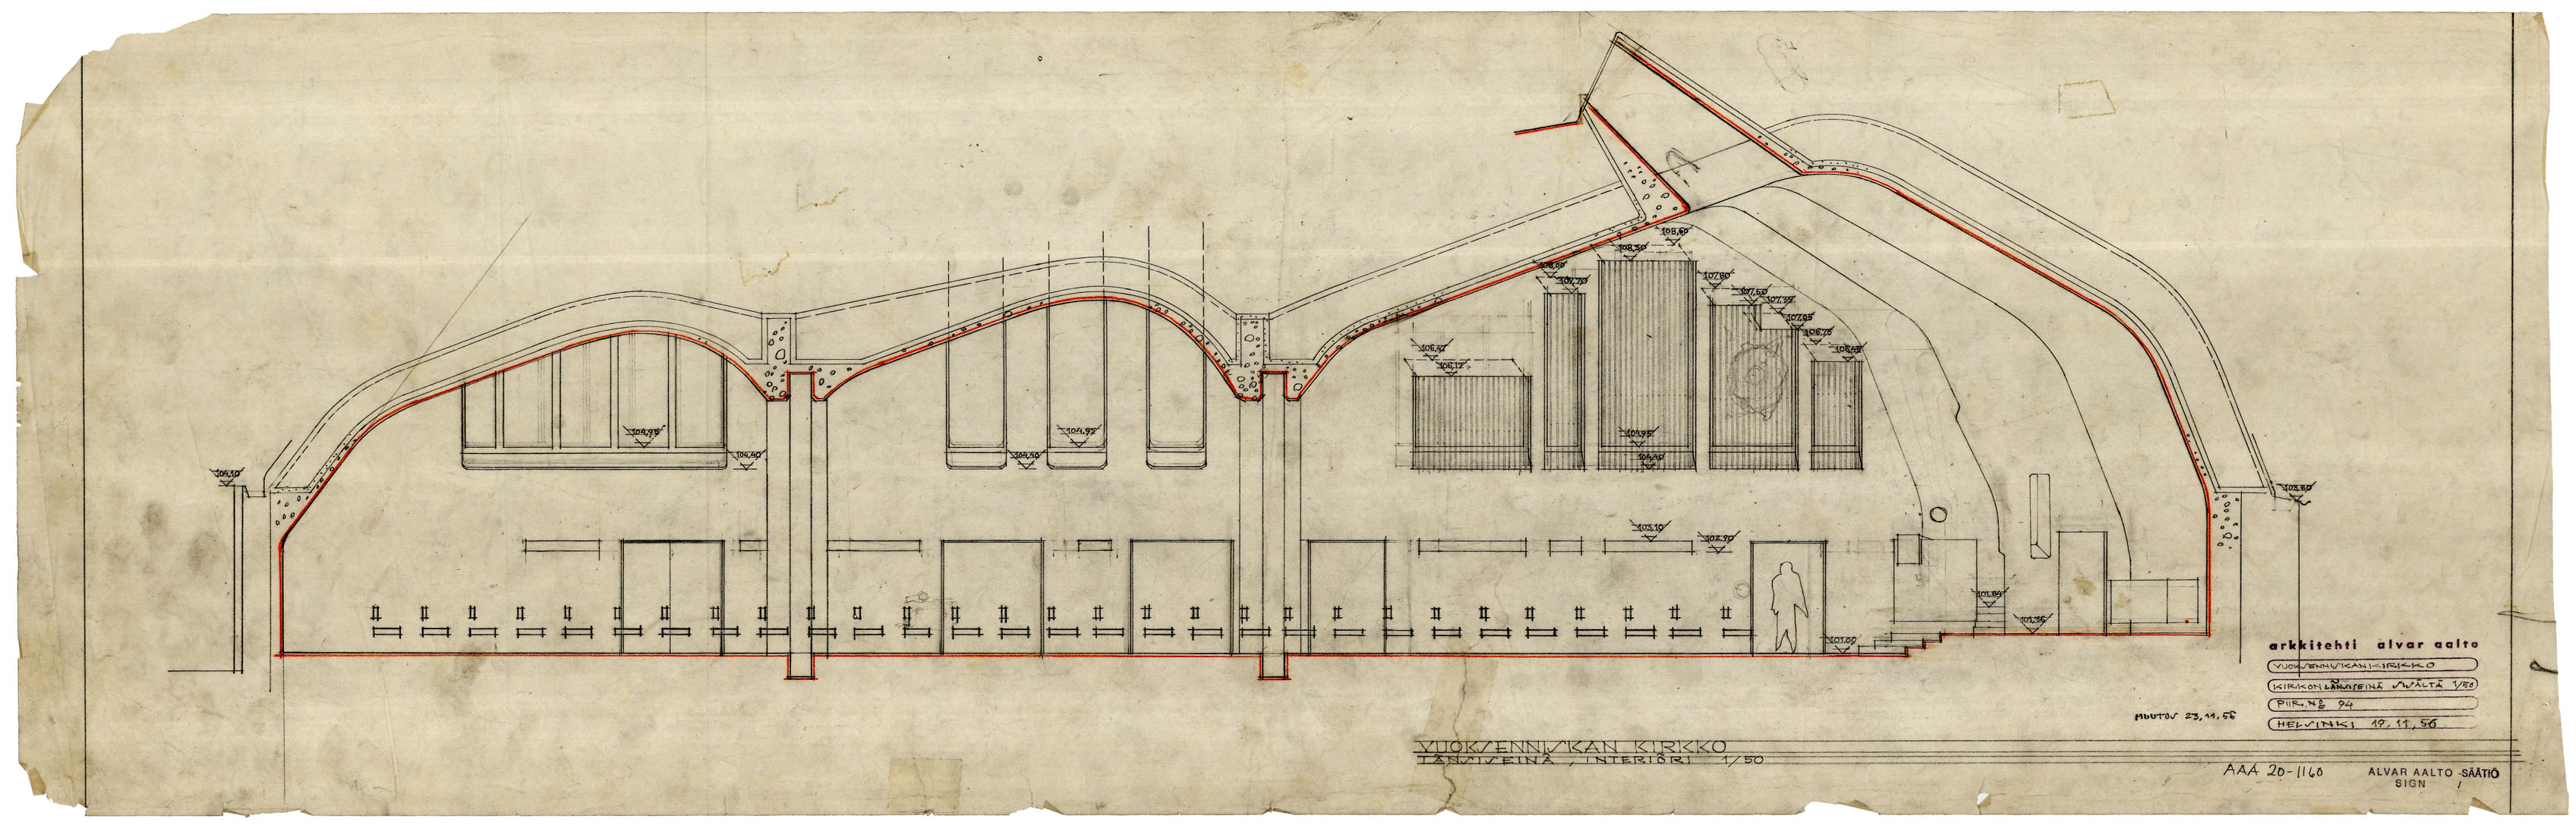 Architectural Drawings Of The Villa Mairea Alvar Aalto Shop